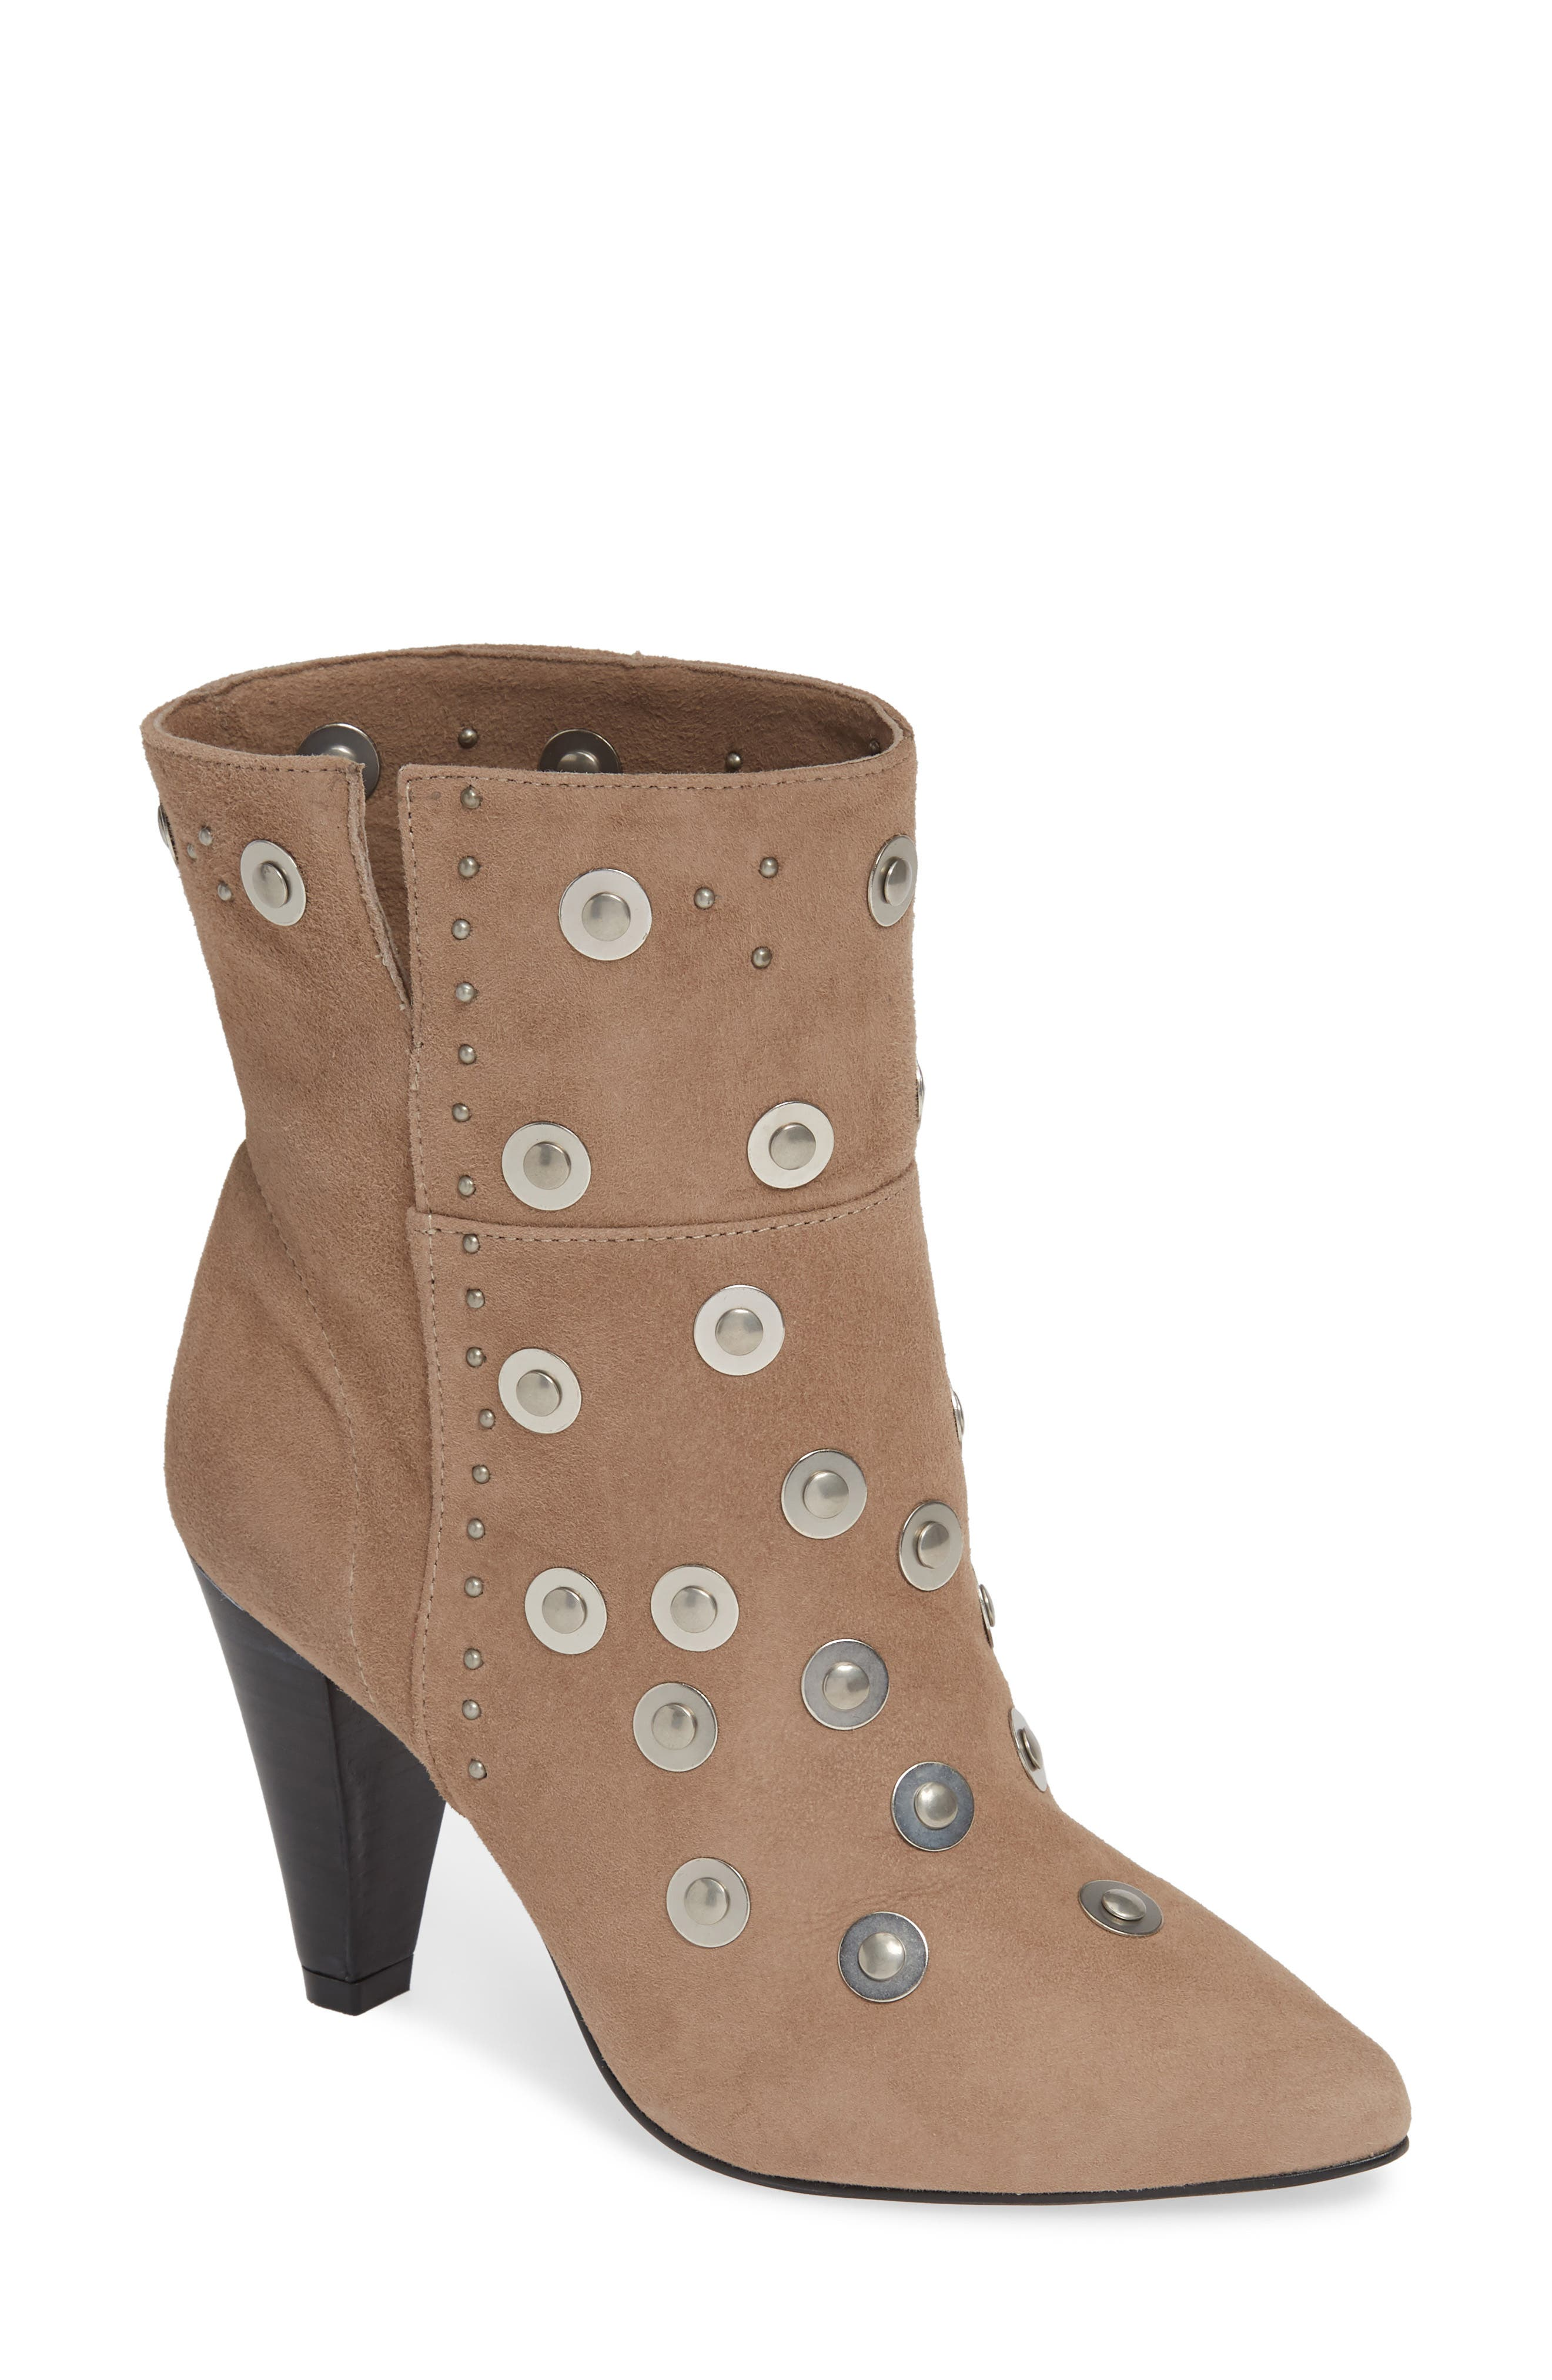 LUST FOR LIFE Casablanca Stud Bootie in Taupe Nubuck Leather